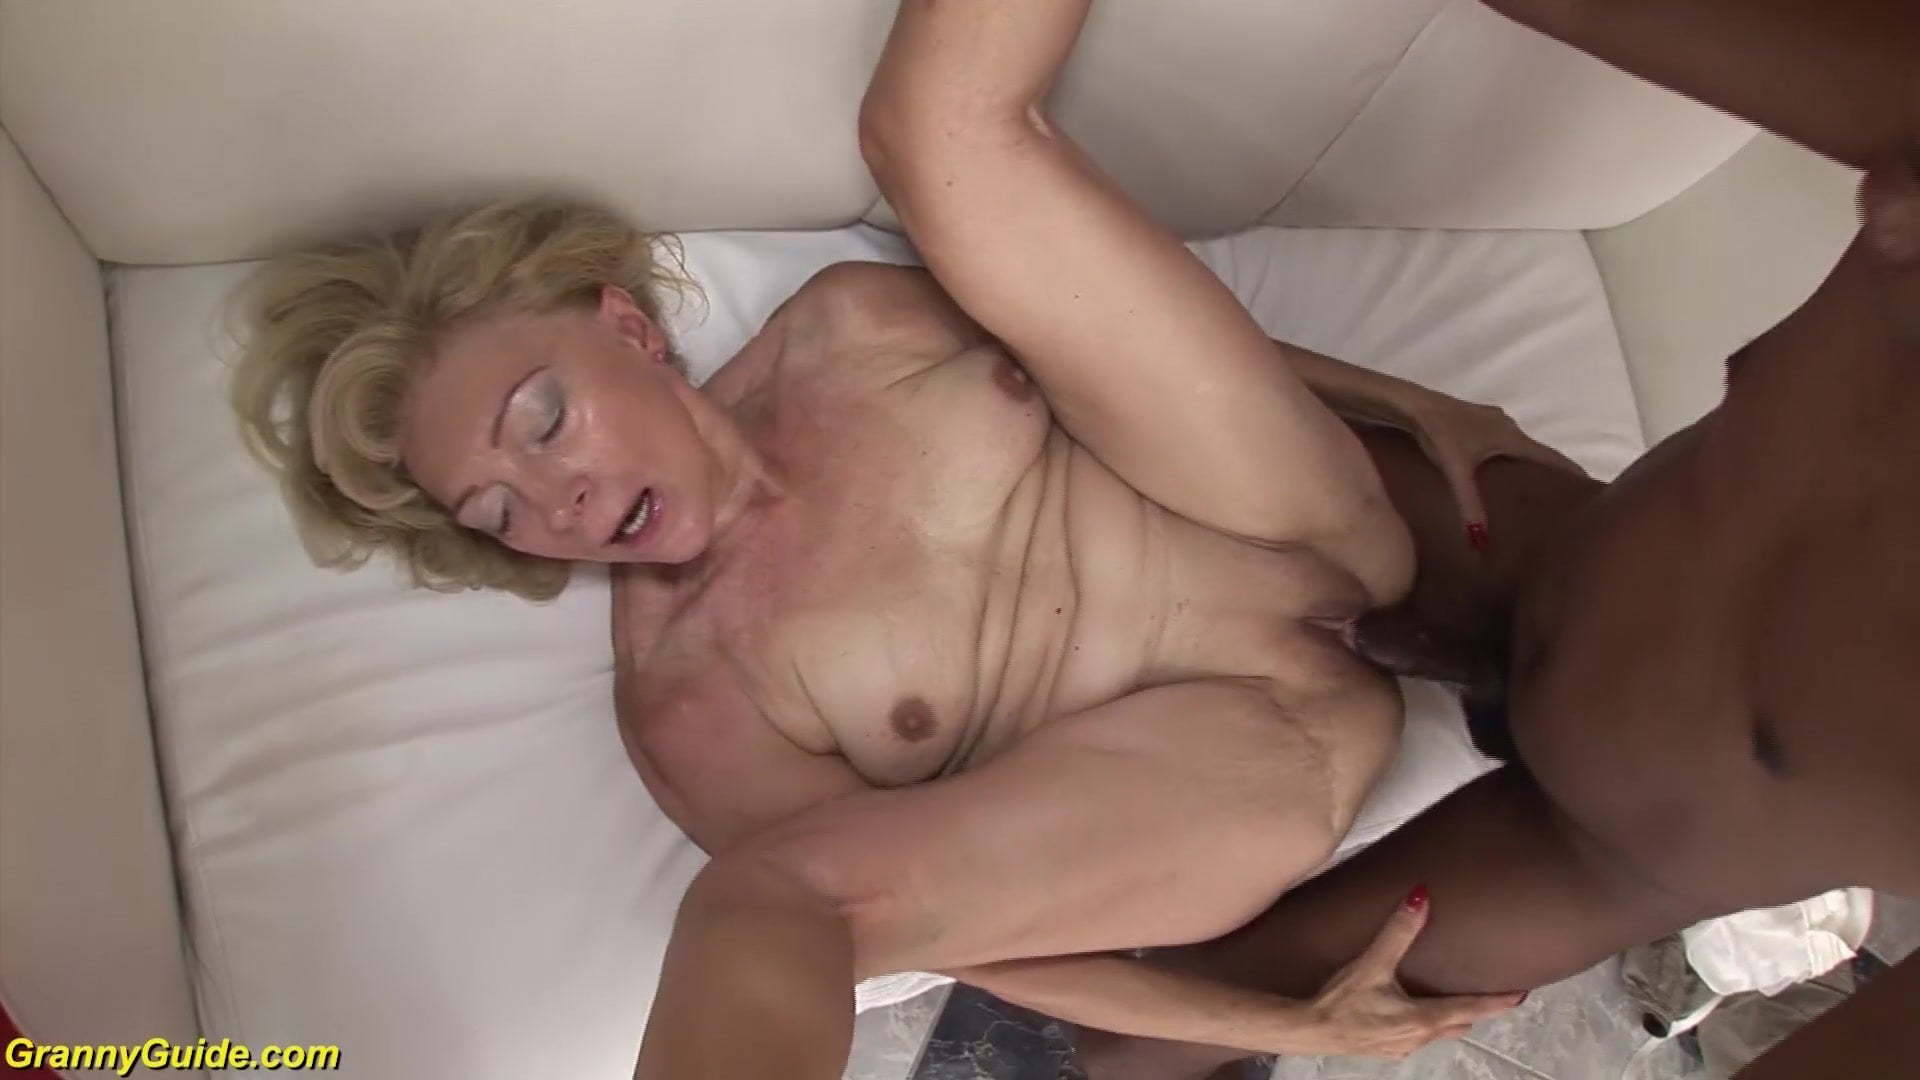 Old Granny Fuck Tube 71 years old grannies first bbc interracial